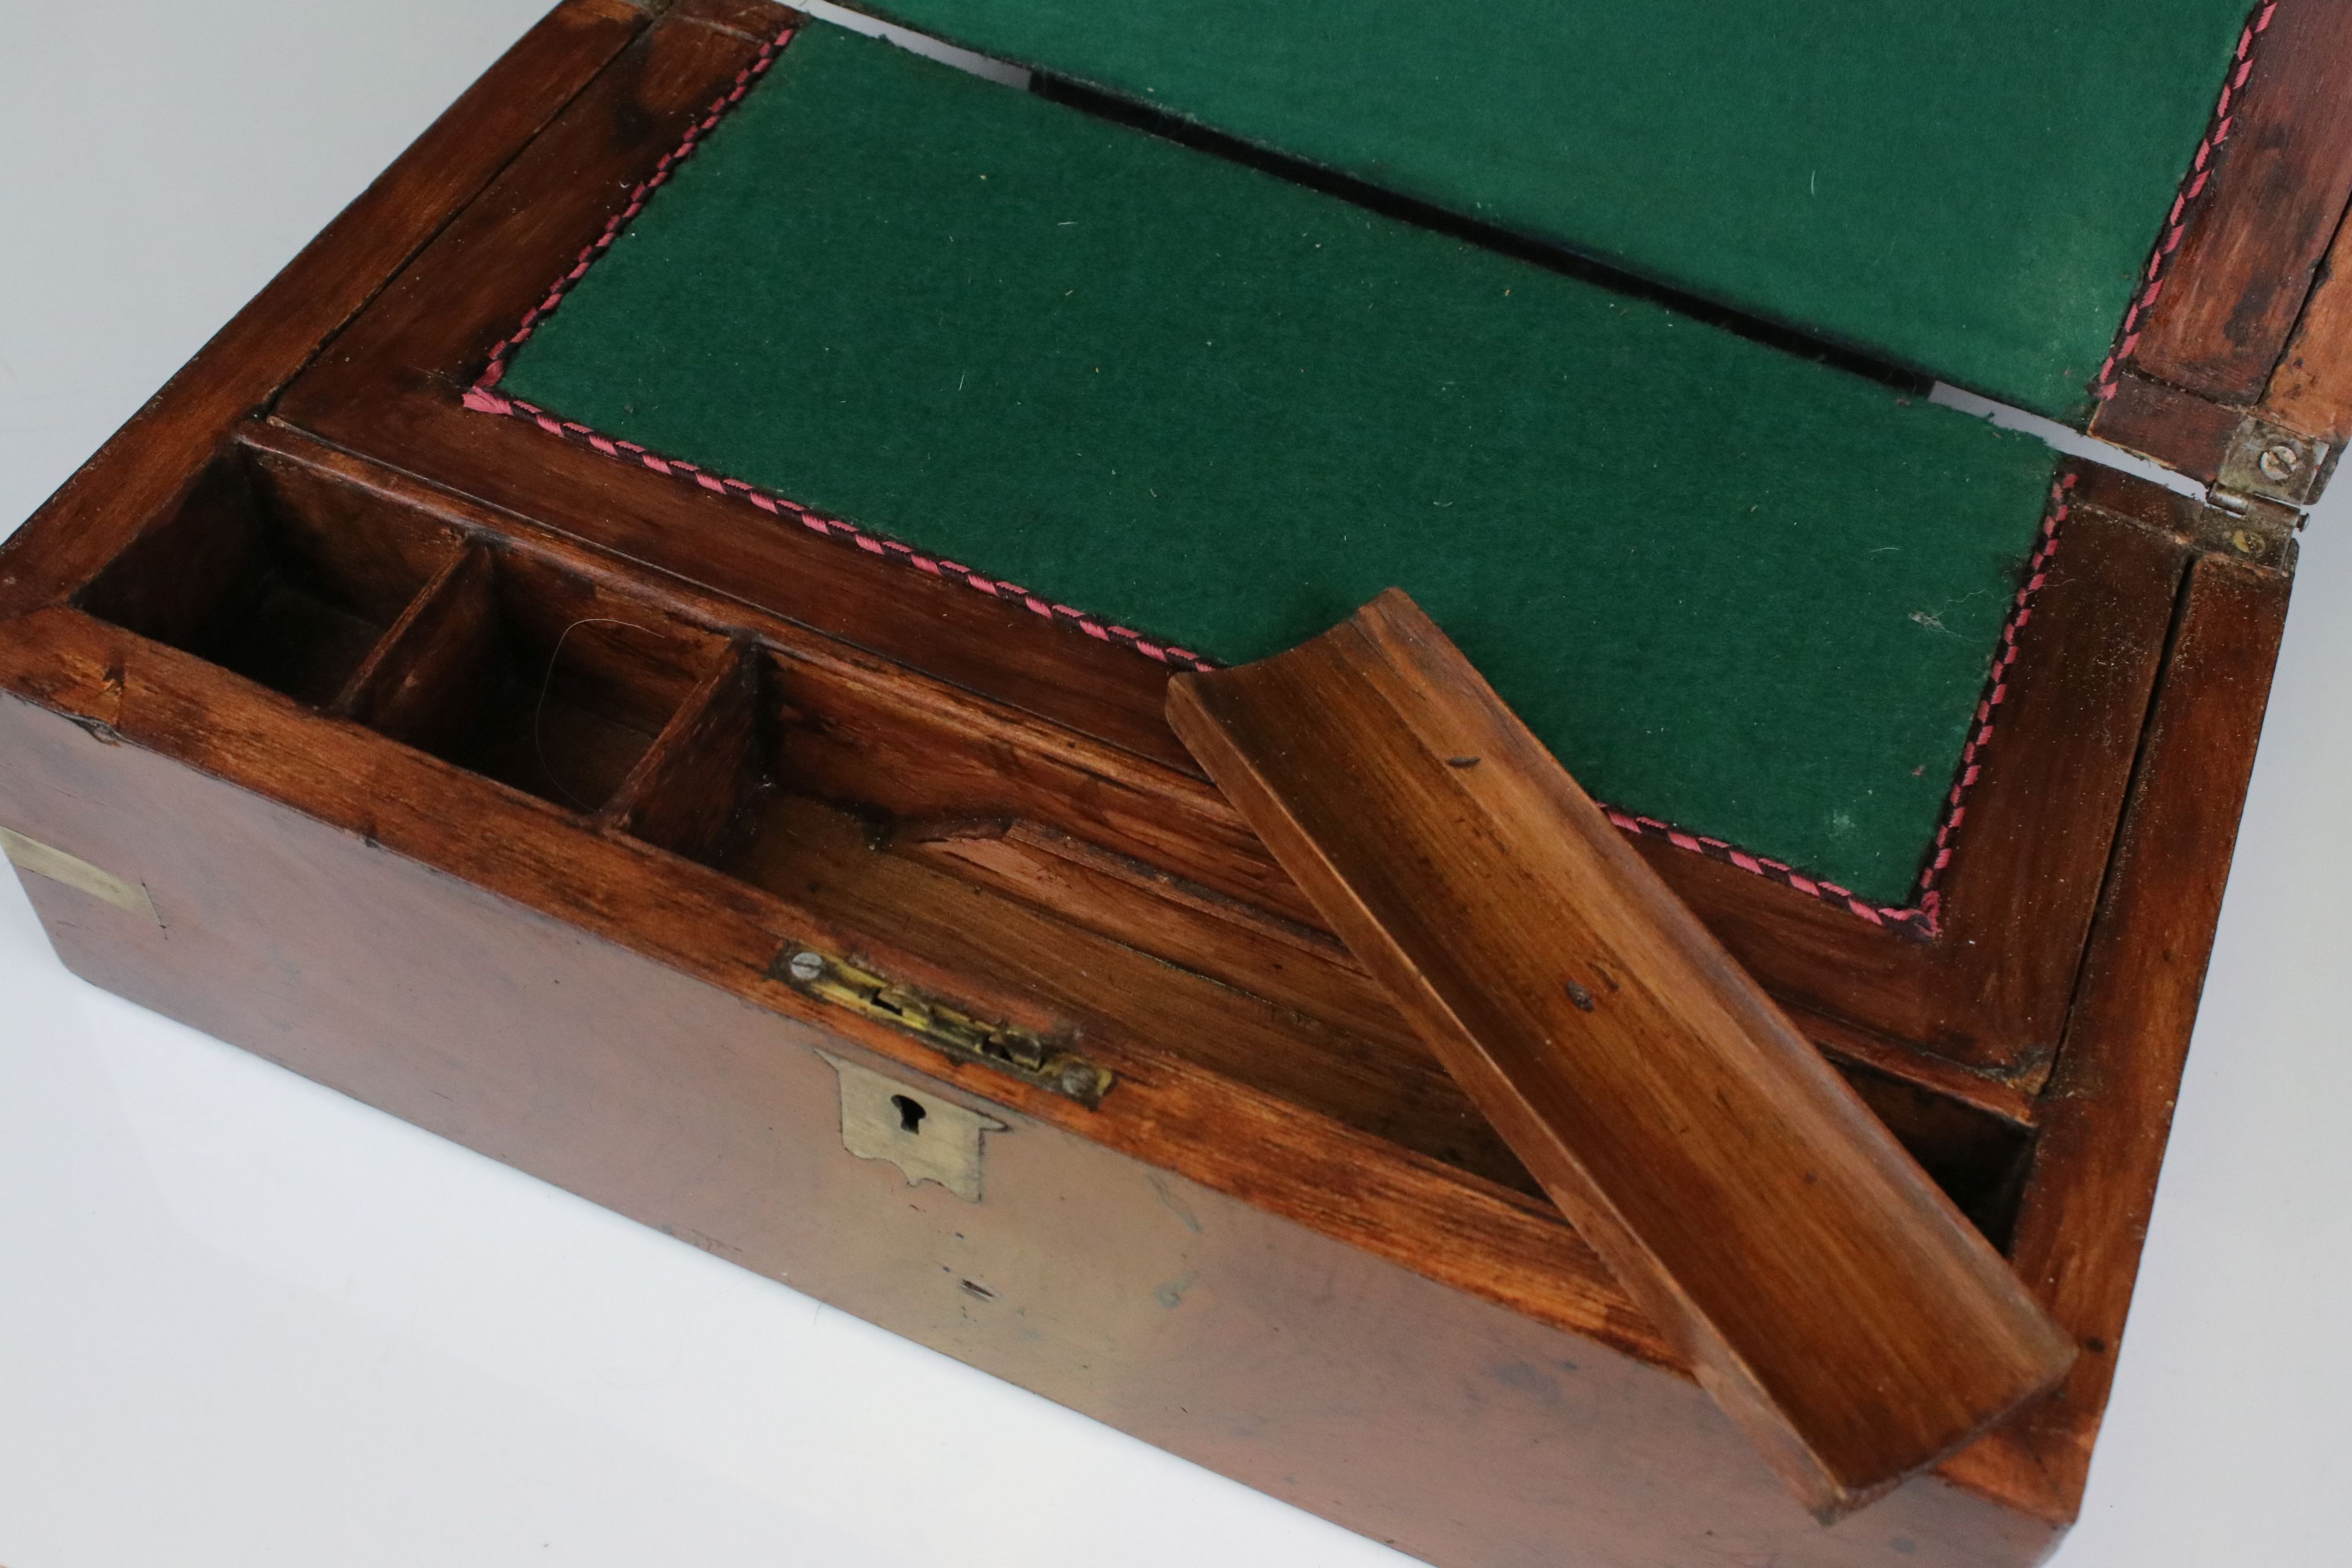 19th century Mahogany and Brass Mounted Writing Slope Box, 35cms wide - Image 3 of 4